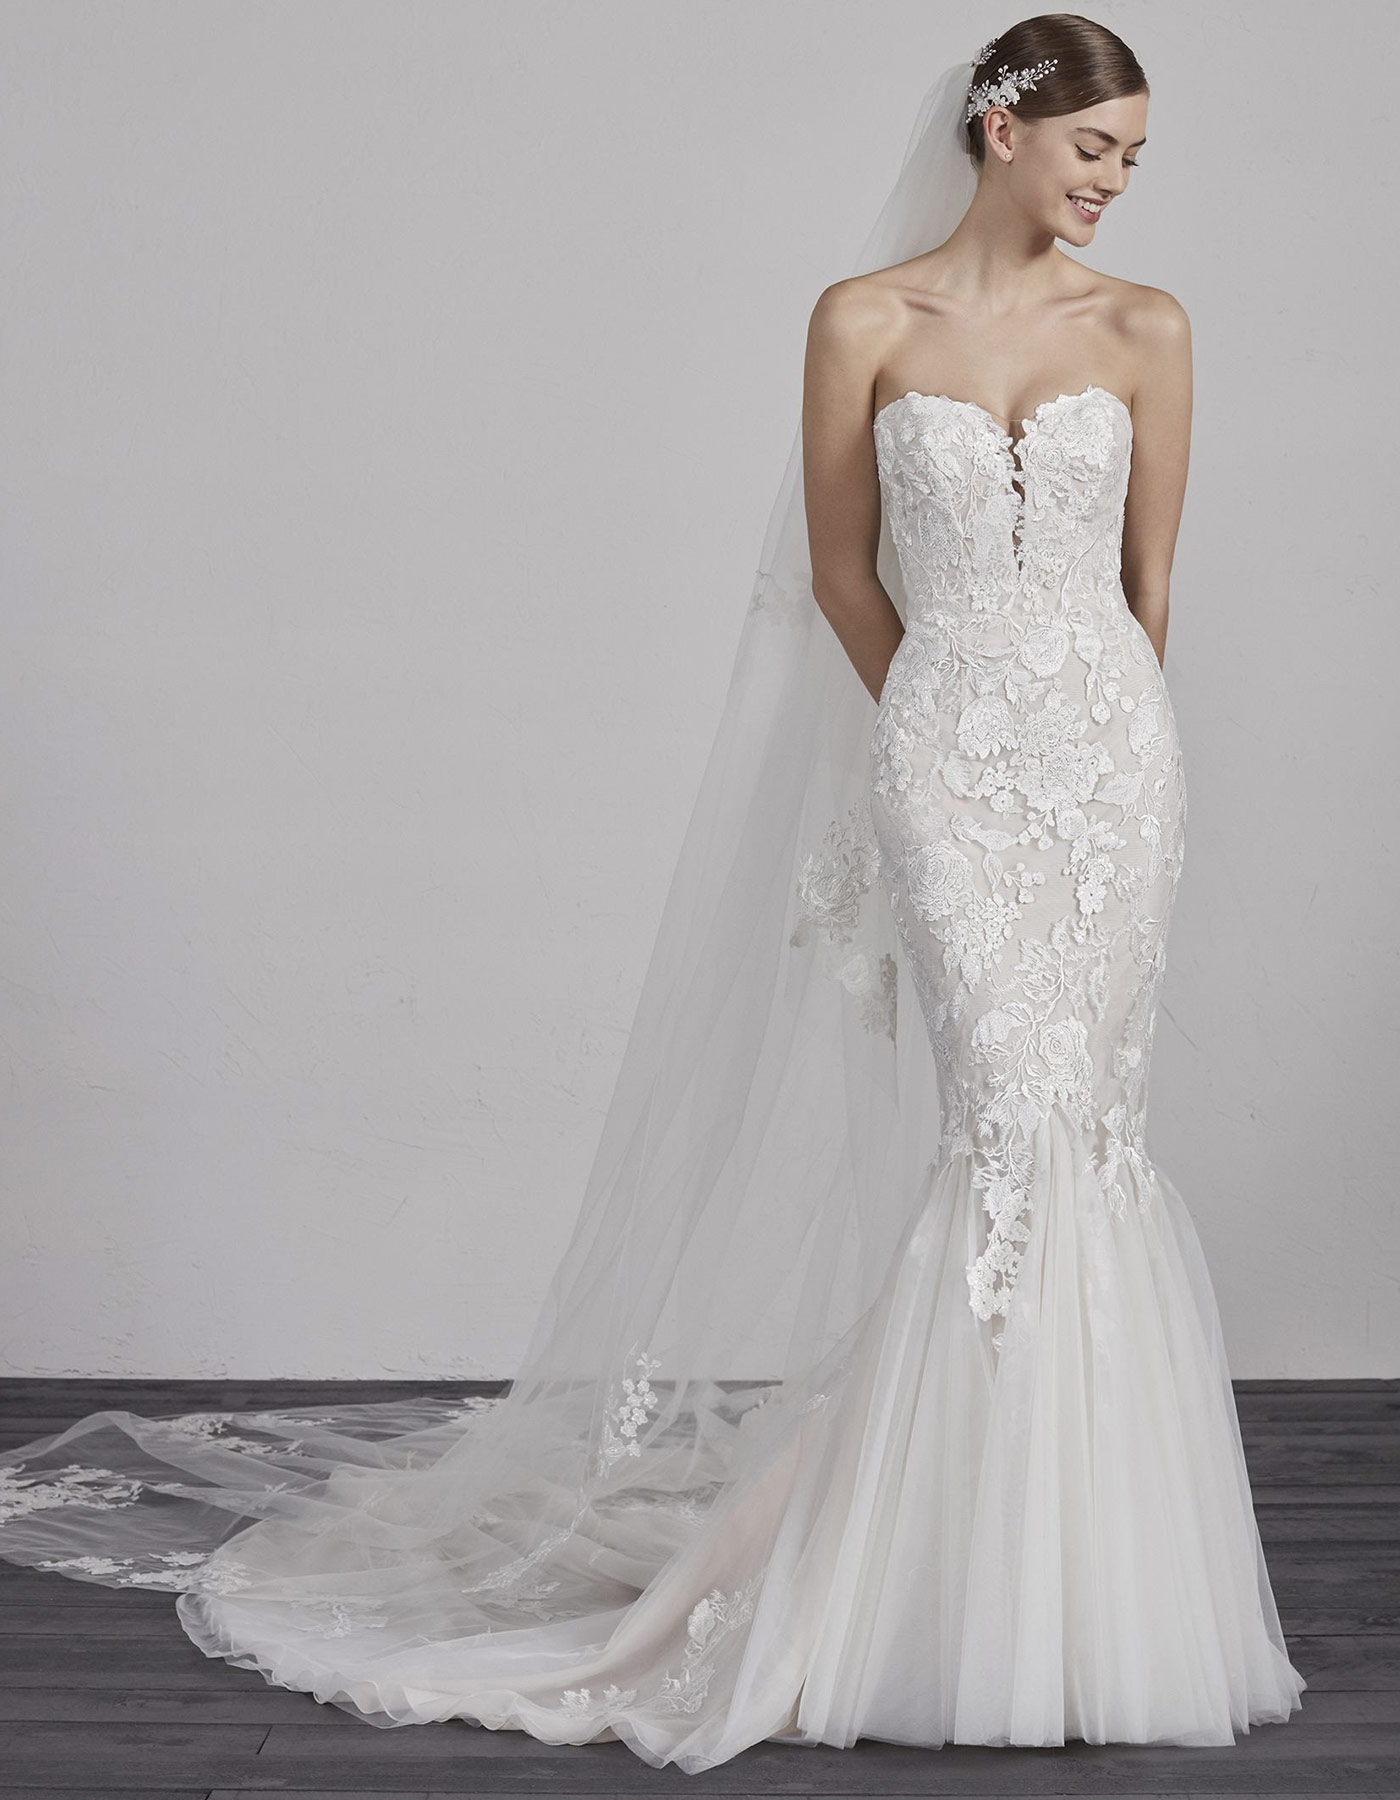 Lace sweetheart neckline plus size wedding dress